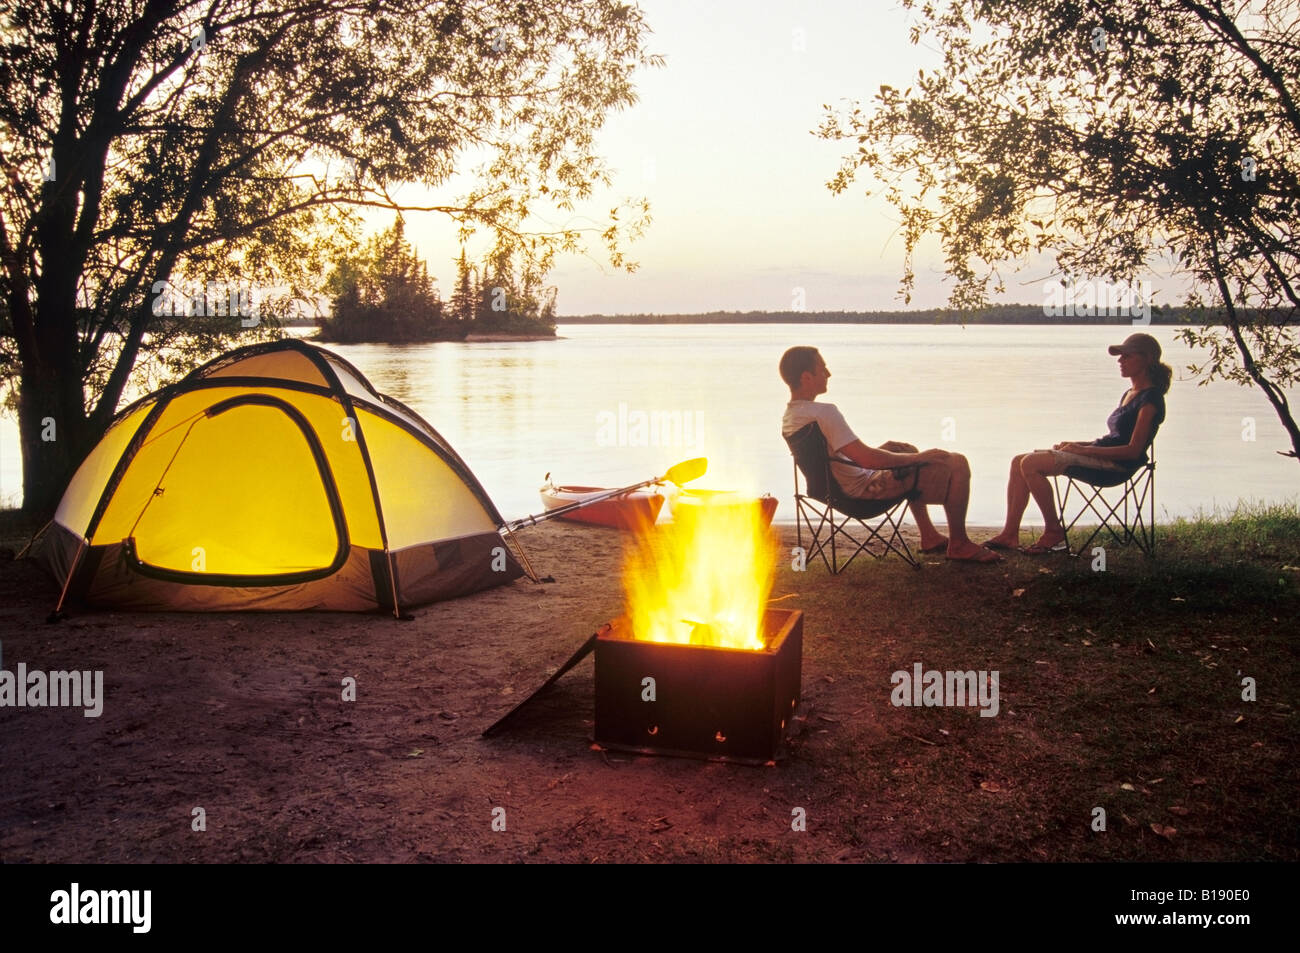 Otter Falls campground, Whiteshell Provincial Park, Manitoba